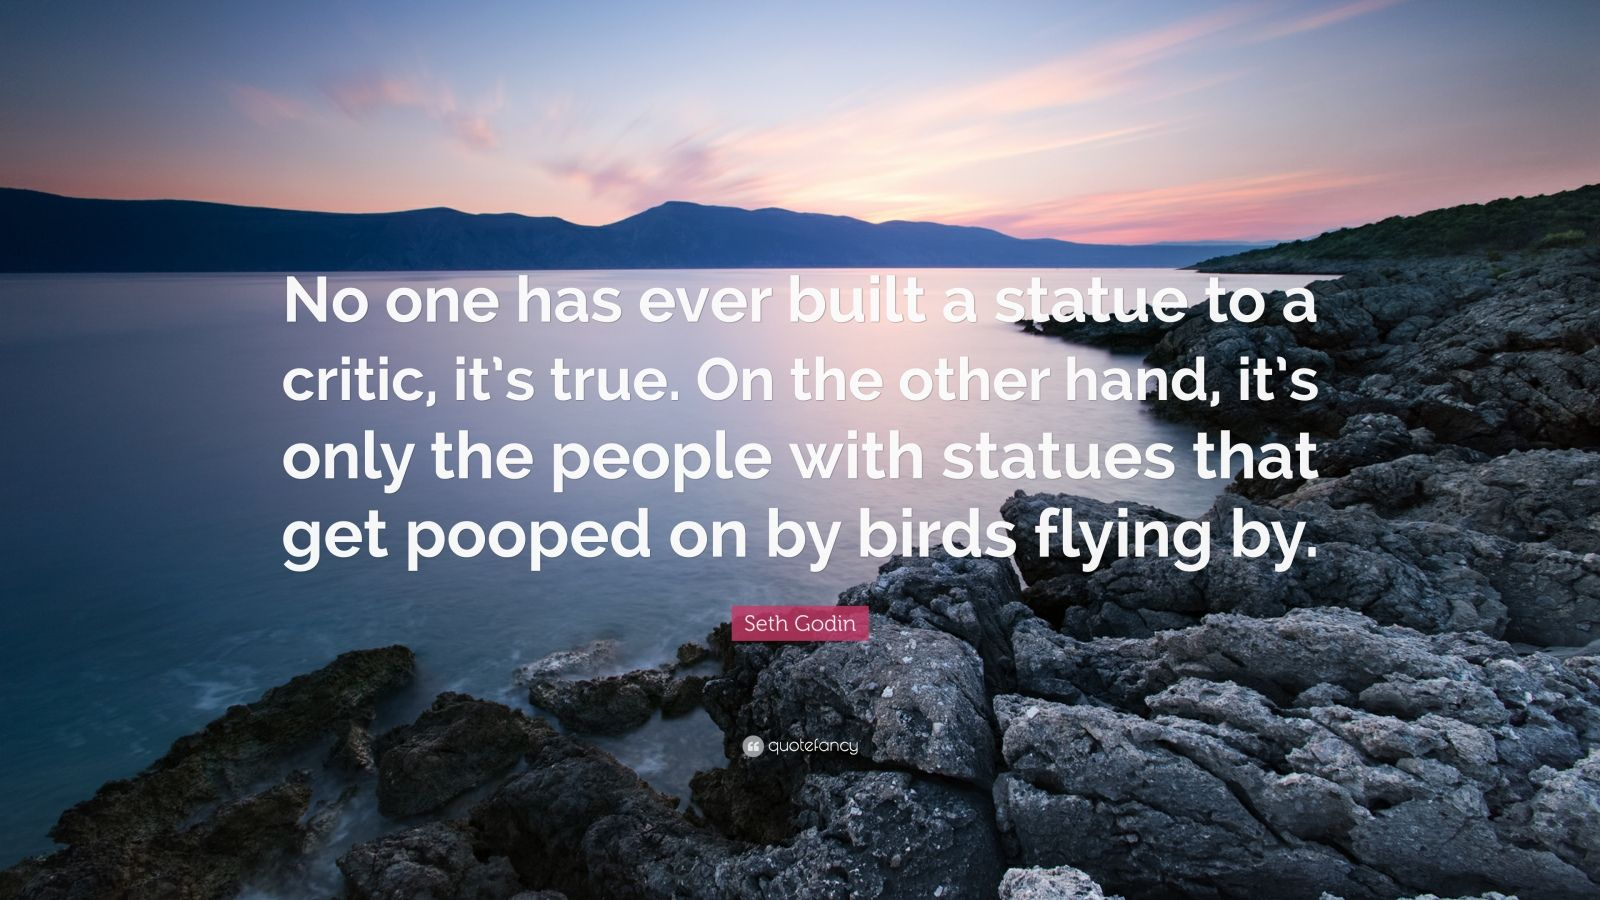 """Seth Godin Quote: """"No one has ever built a statue to a critic, it's true. On the other hand, it's only the people with statues that get pooped on by birds flying by."""""""